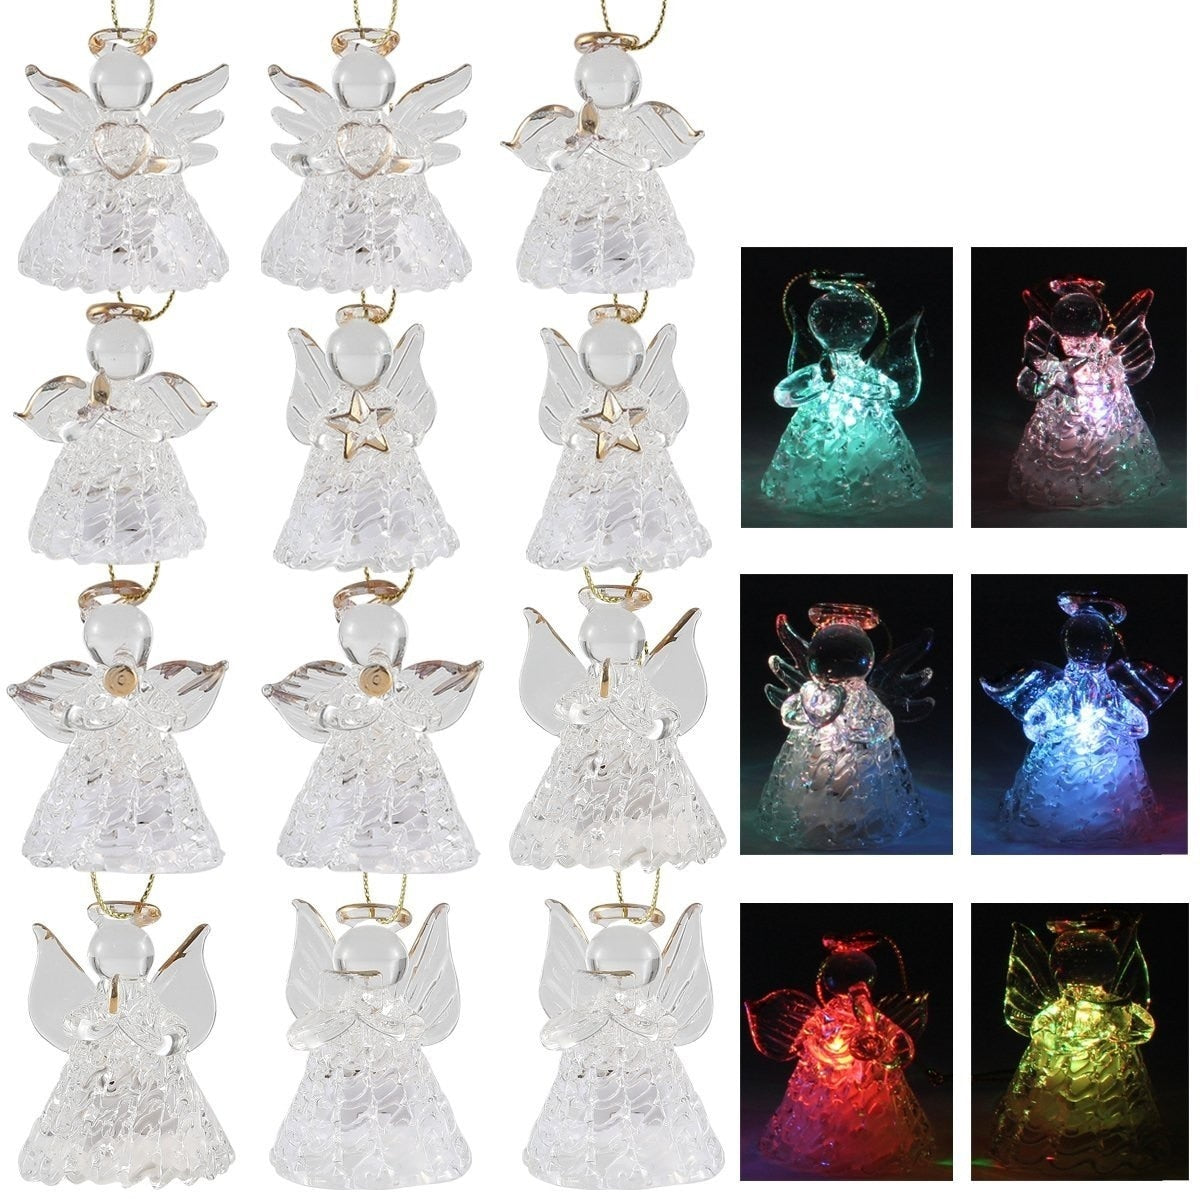 Spun Glass Angel Ornaments with LED Lights, 12-Piece Set